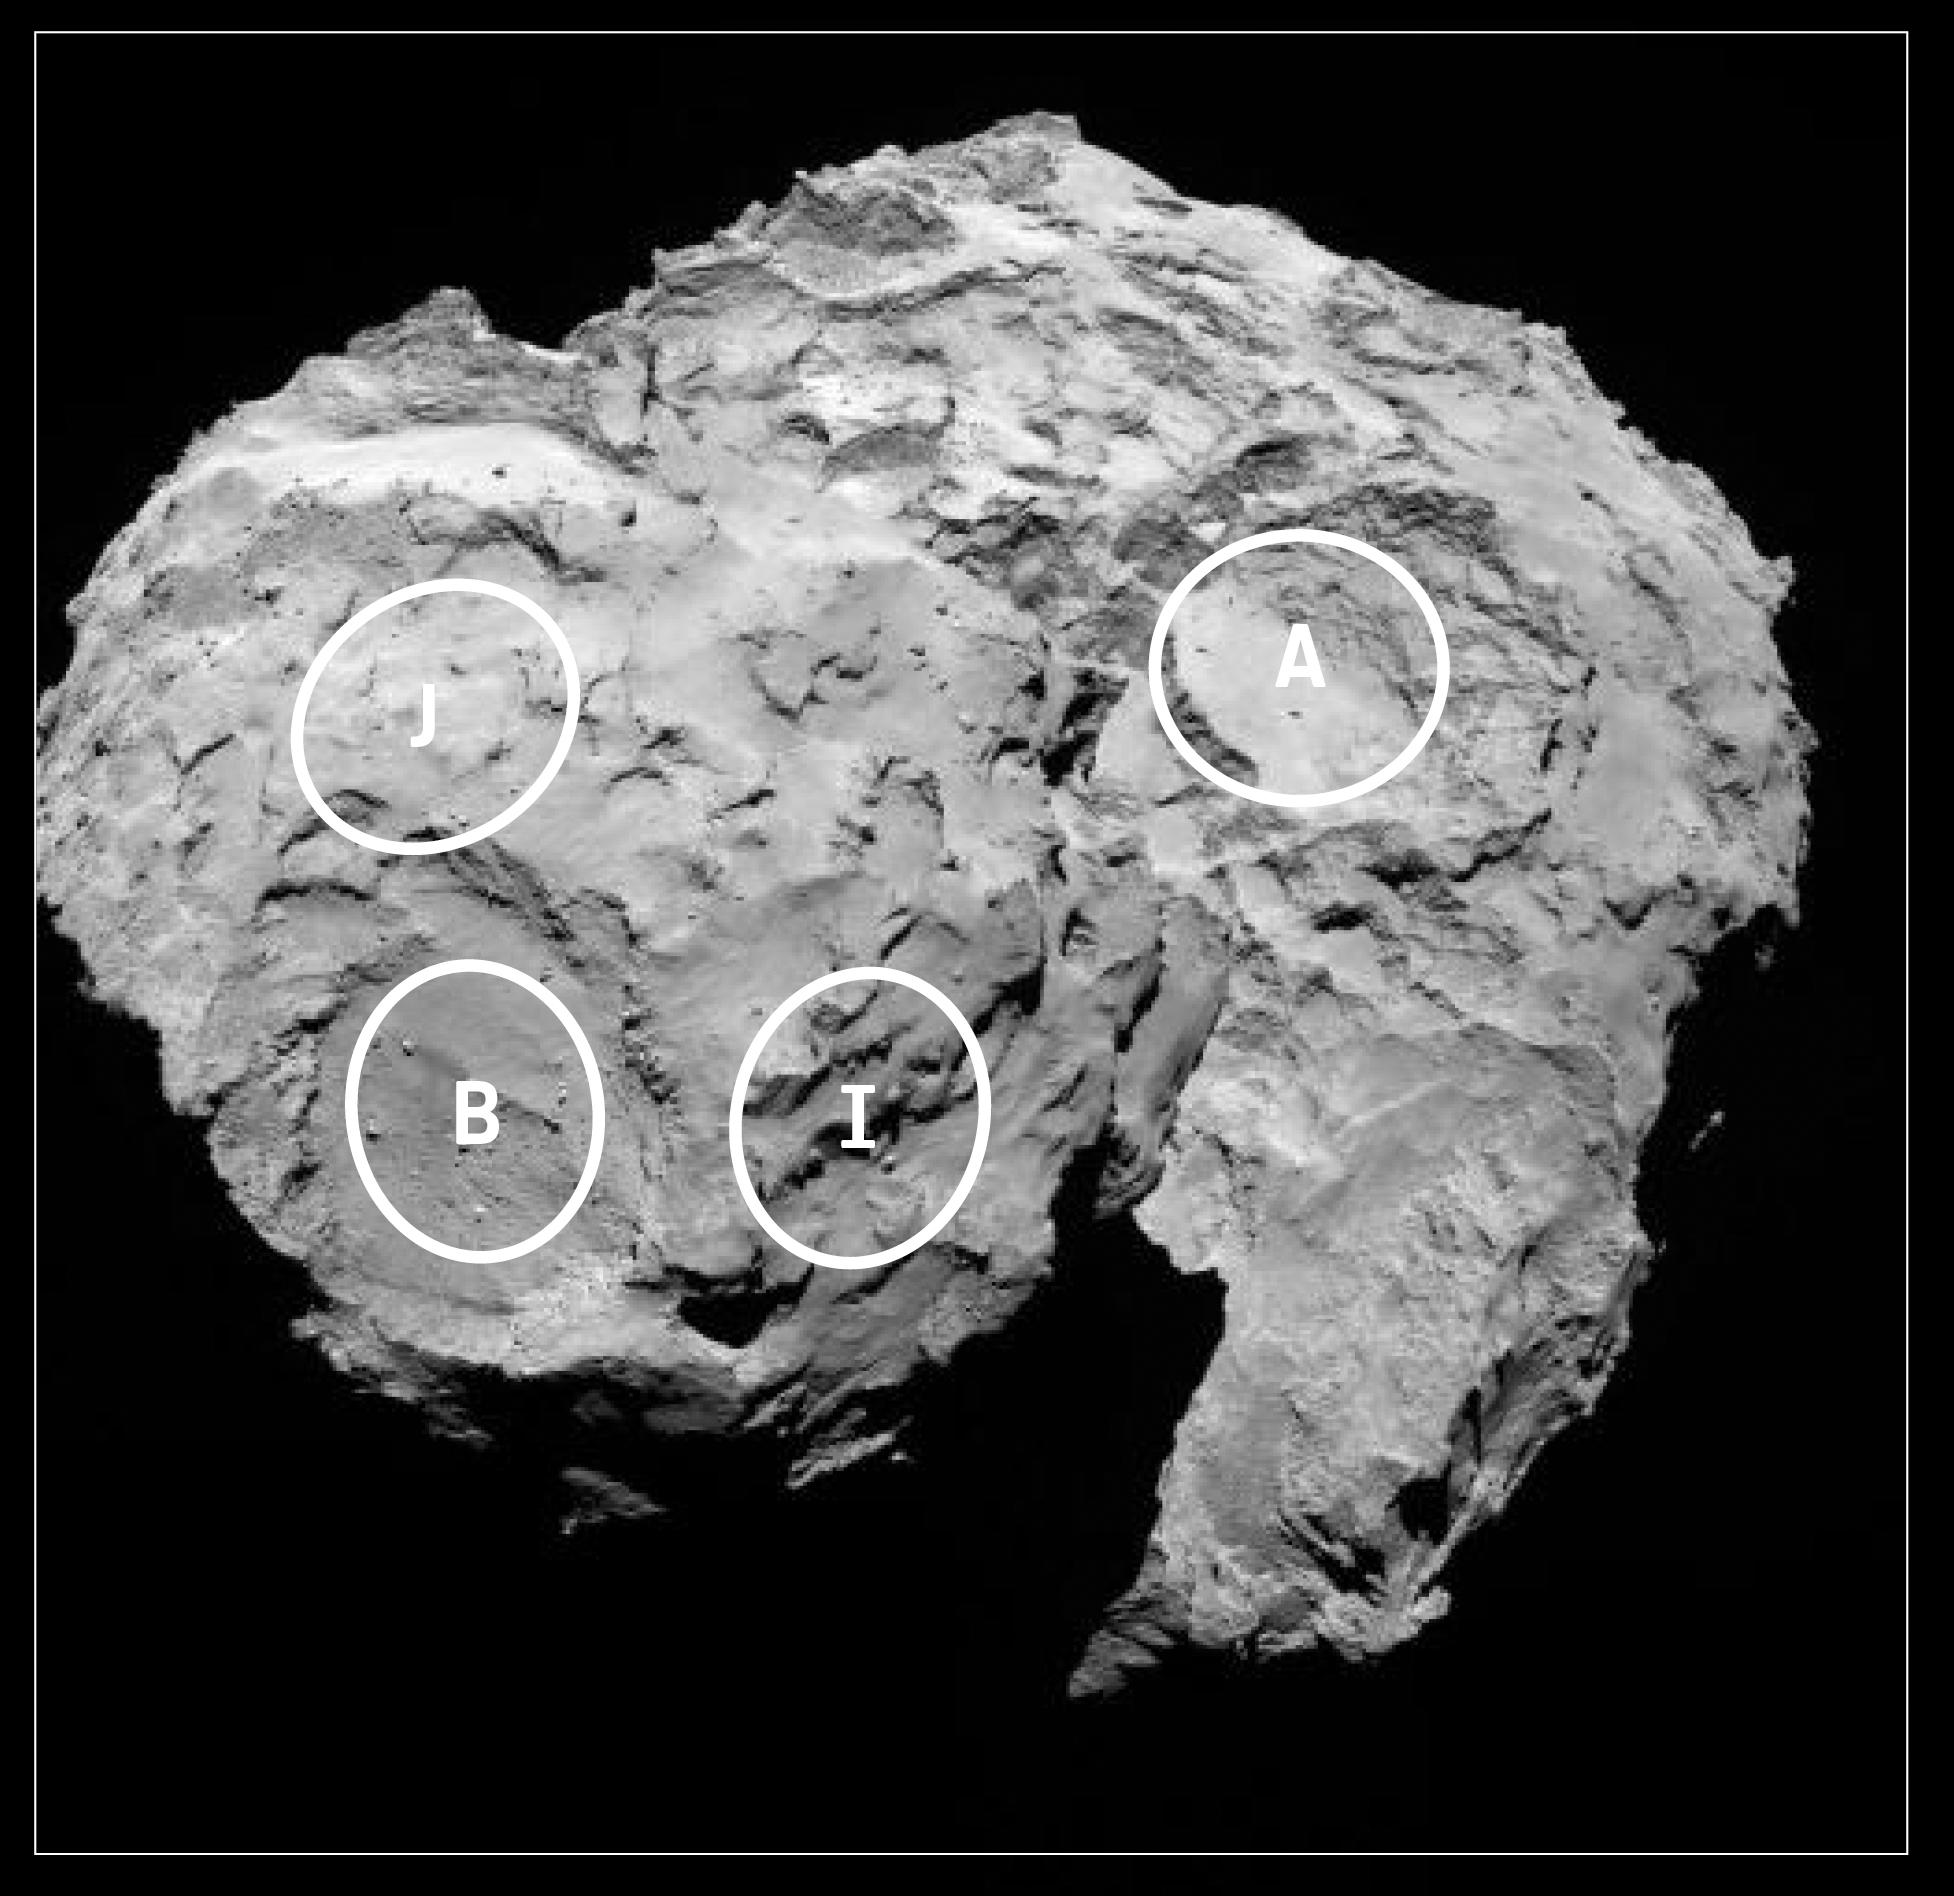 5 landing sites picked for daring comet touchdown – Astro Bob